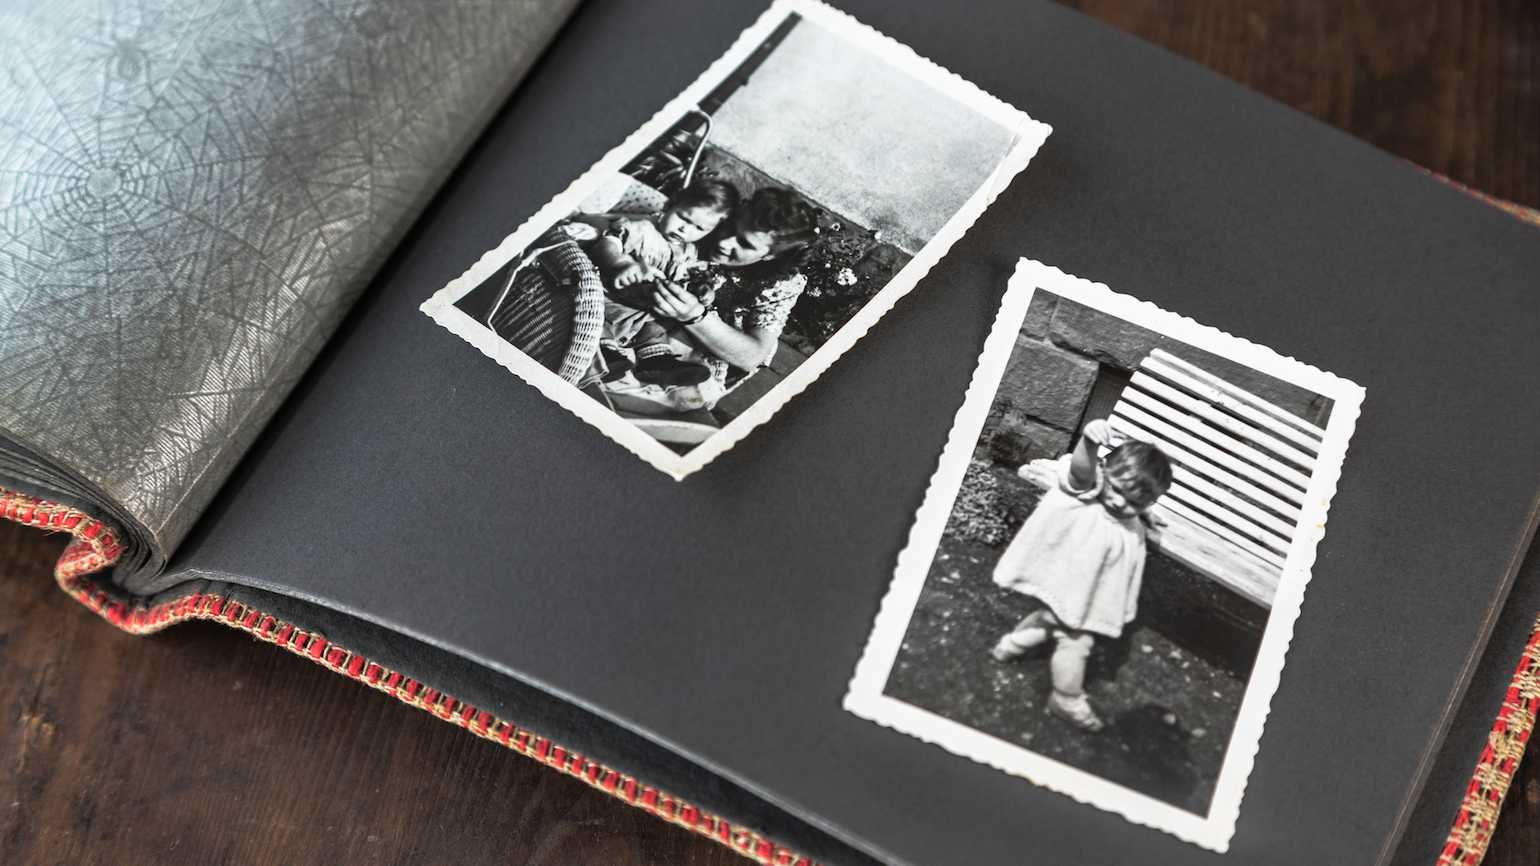 Family photos and family memories